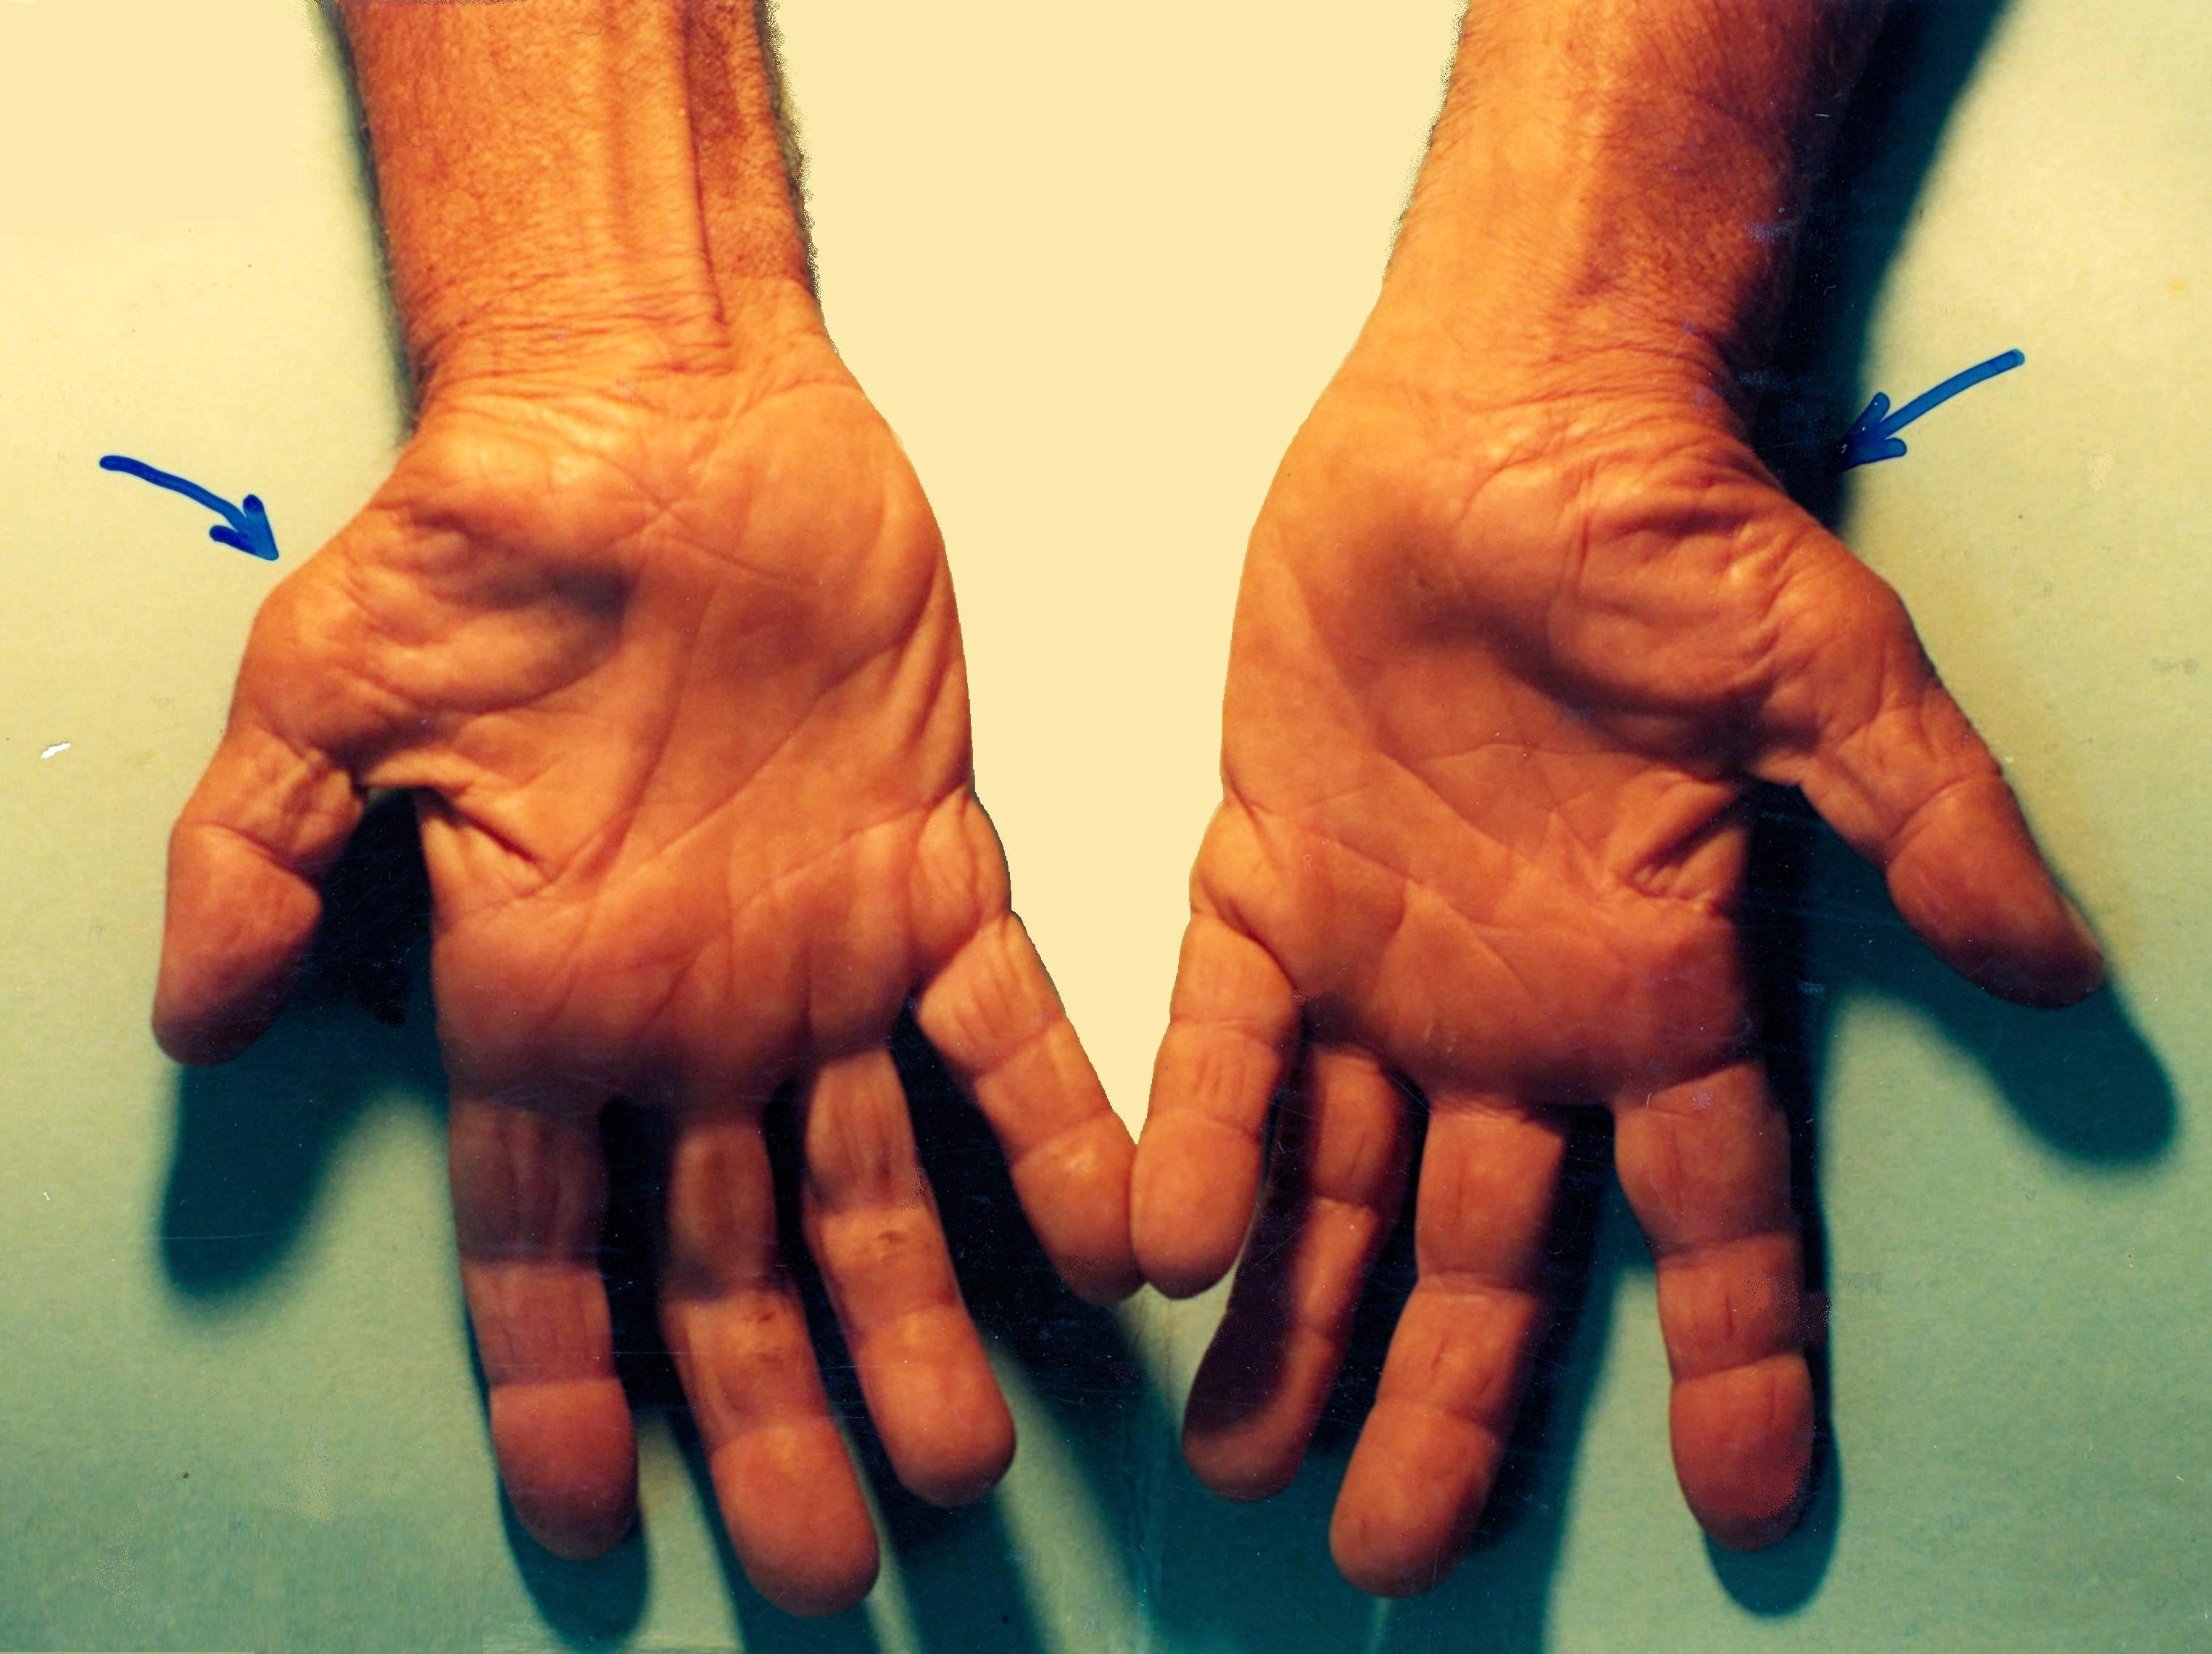 A photo of two hands with inflammed thumbs caused by untreated carpal tunnel syndrome.